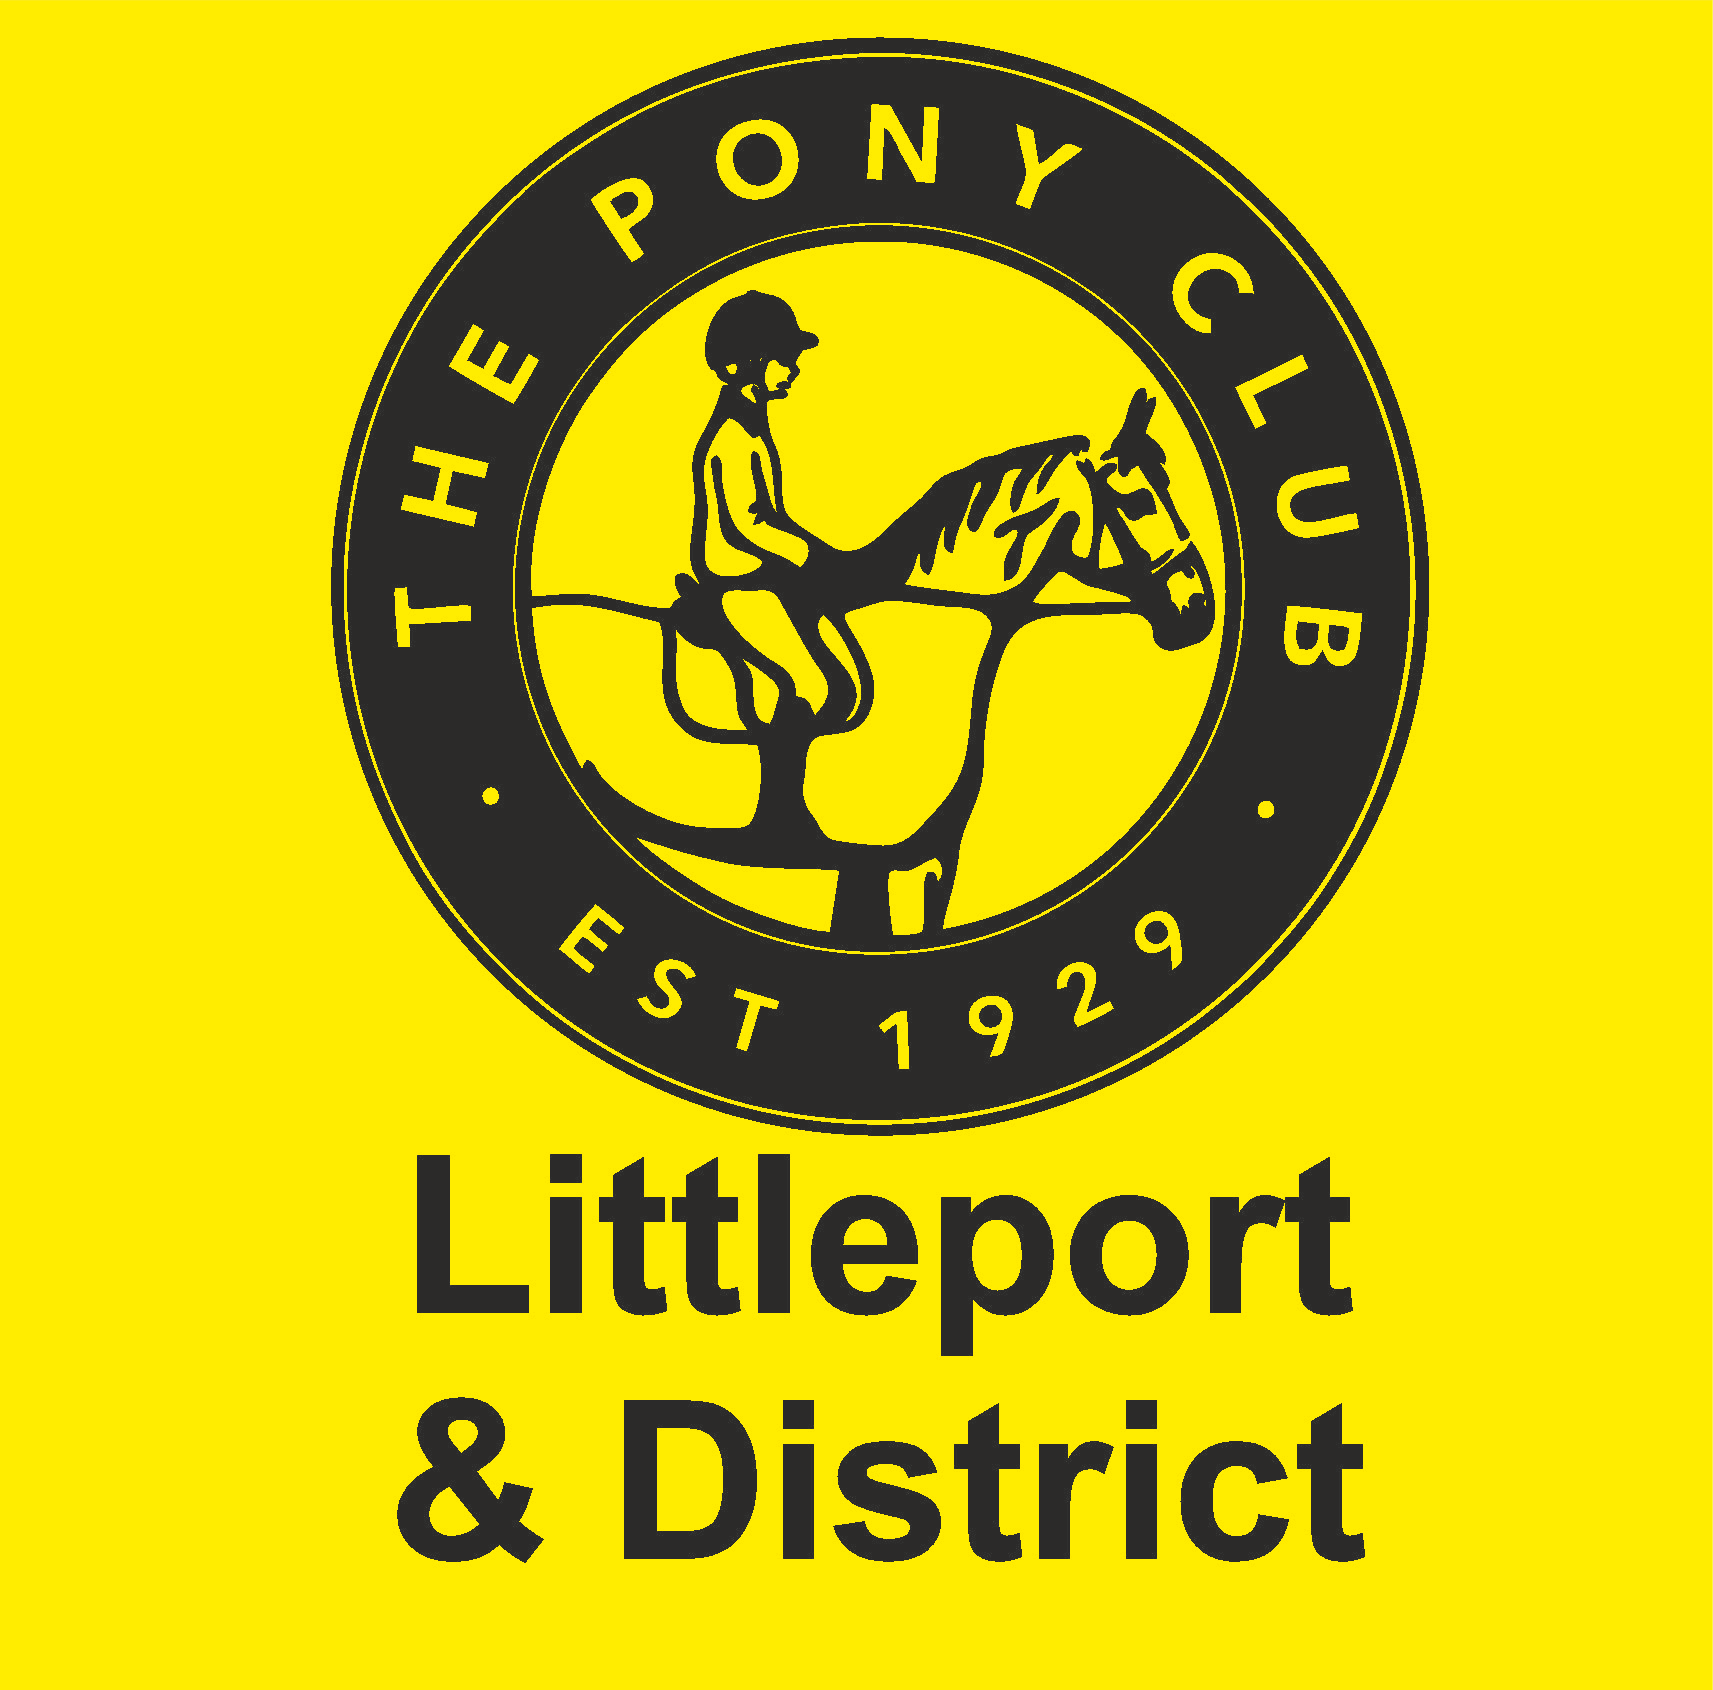 Littleport and district pont club logo sigma embroidery